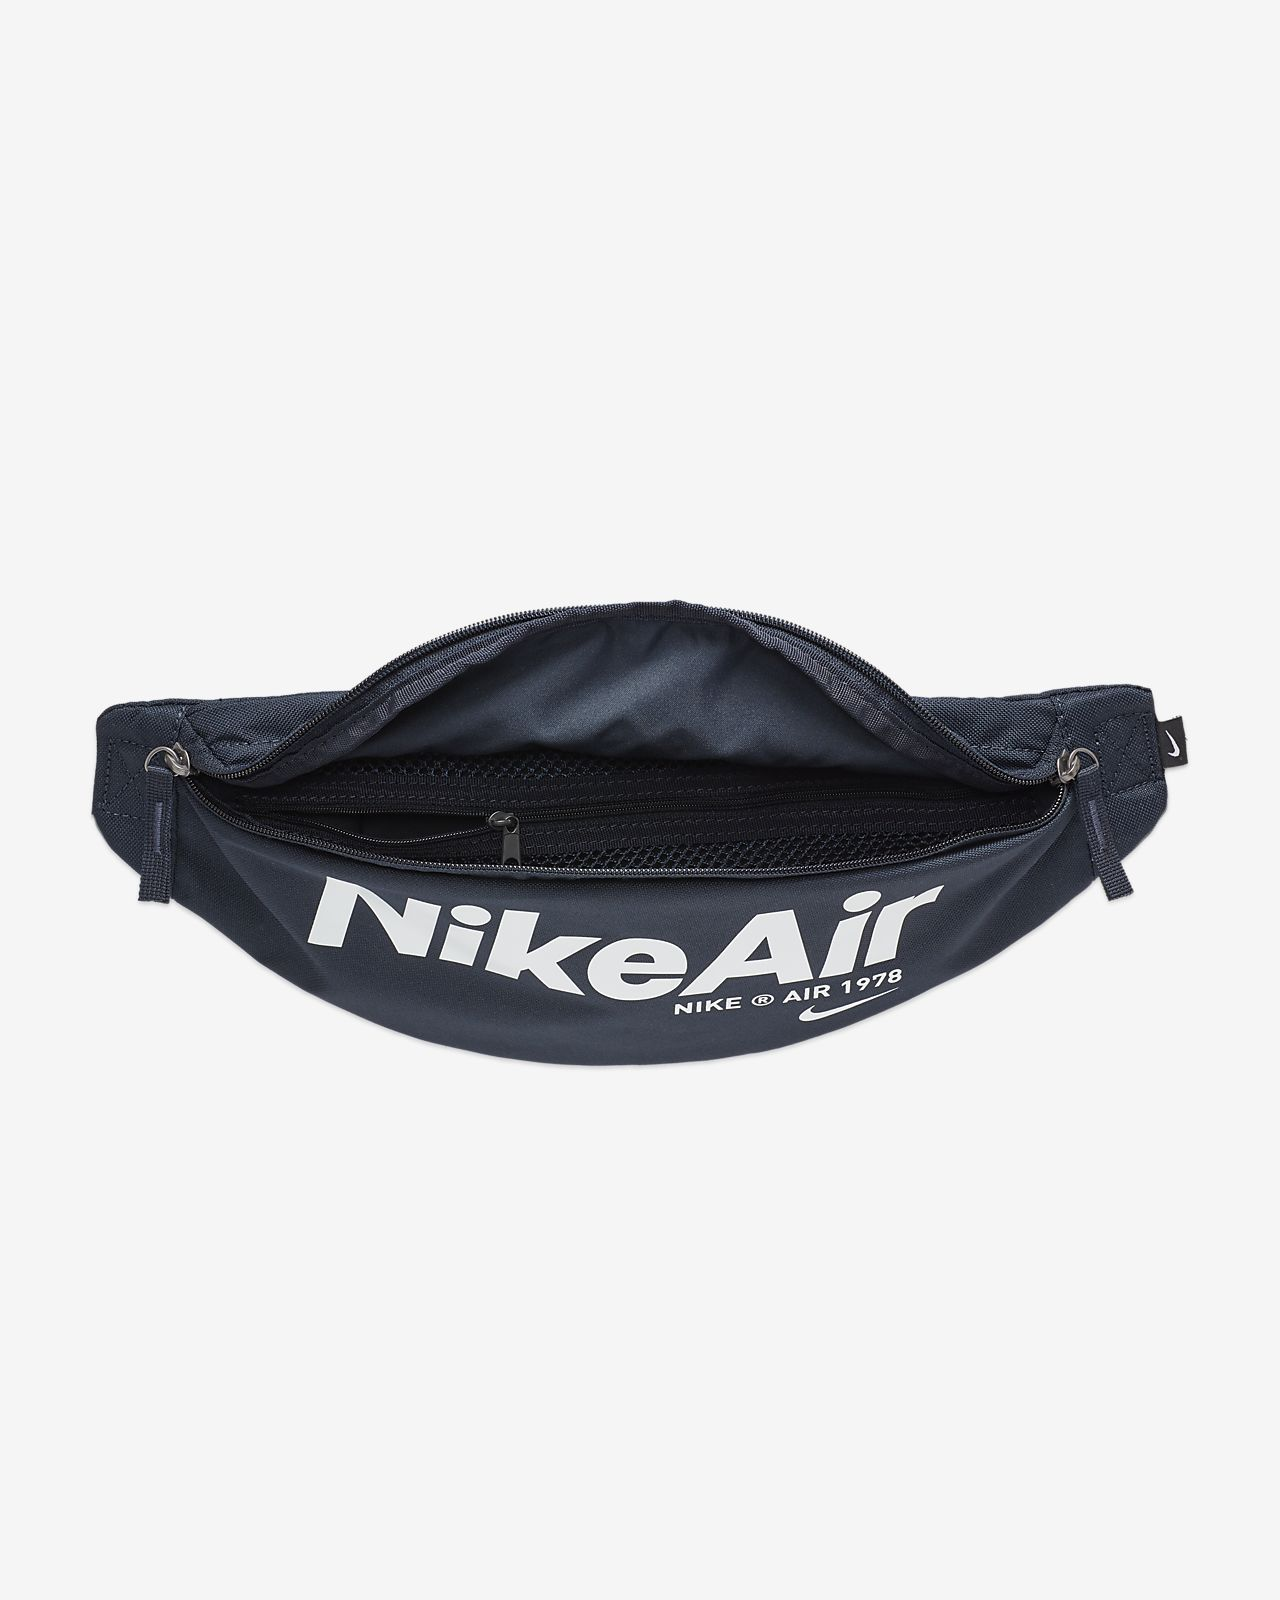 Nike Heritage 2.0 Mini Bag | all about sports